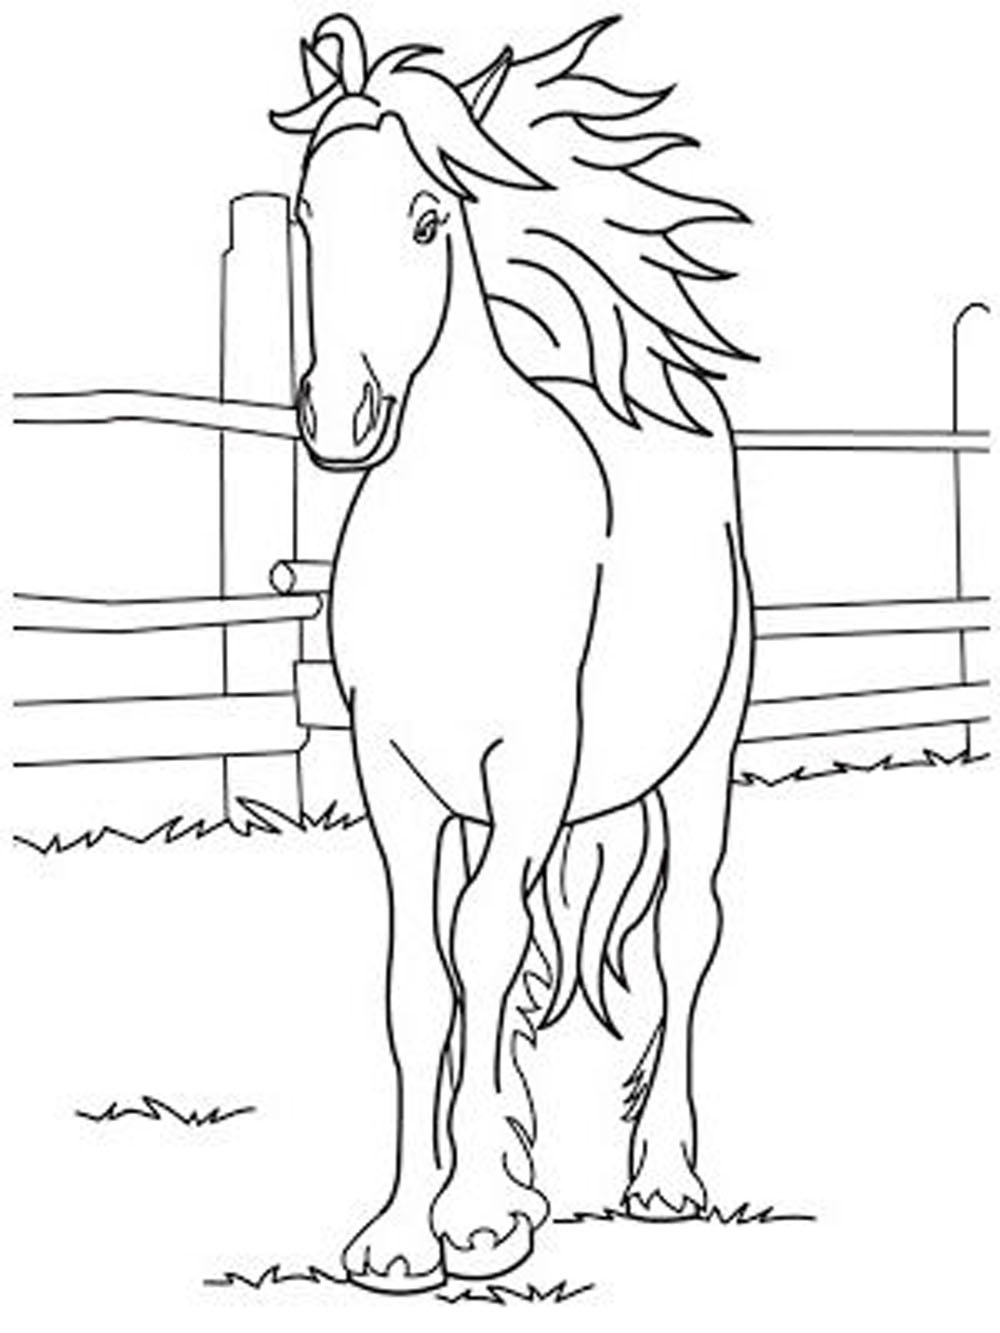 coloring pictures of horse kids n funcom coloring page horse breeds mare horse of pictures horse coloring